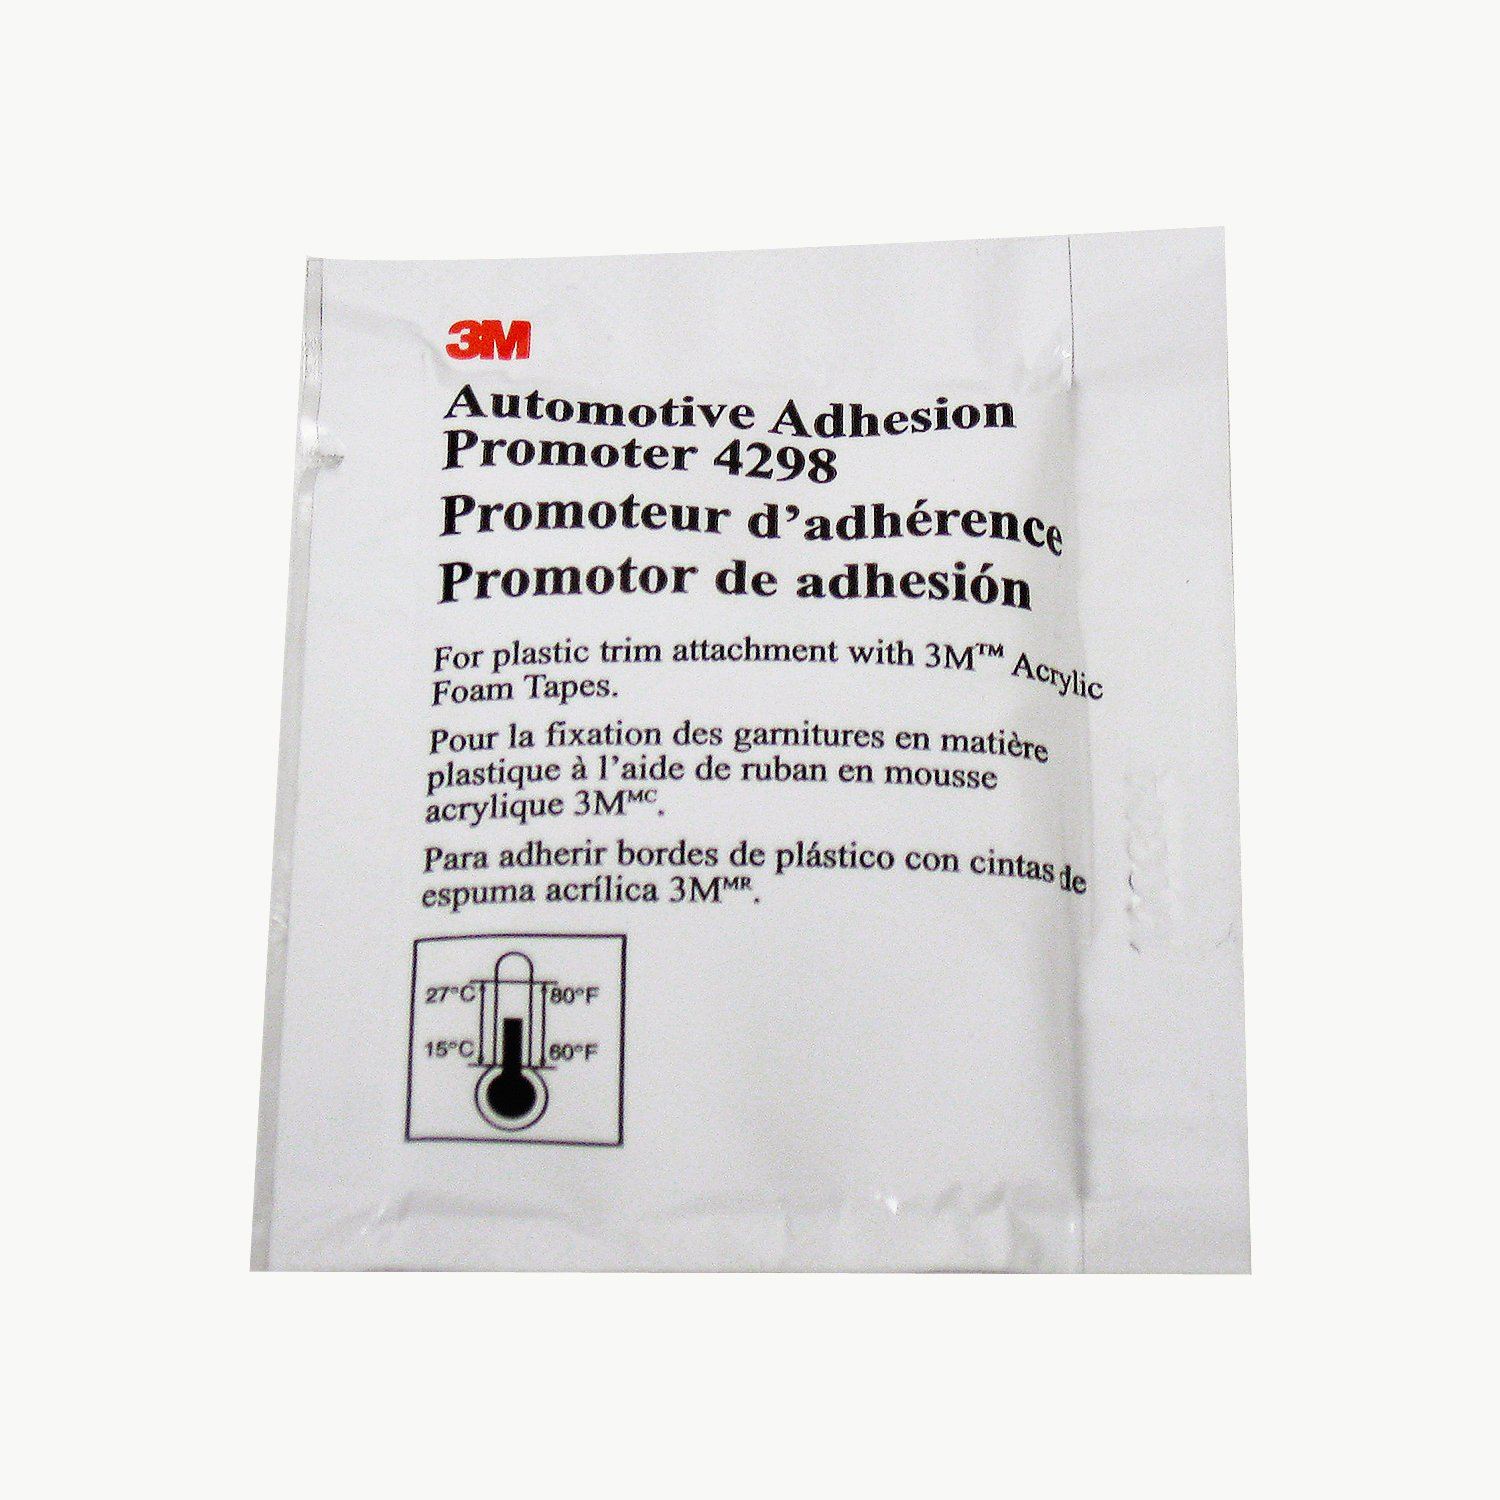 3M 4298 Adhesion Promoter, 25 Sponge Applicators (Choose 3, 5 or 25 Qty)